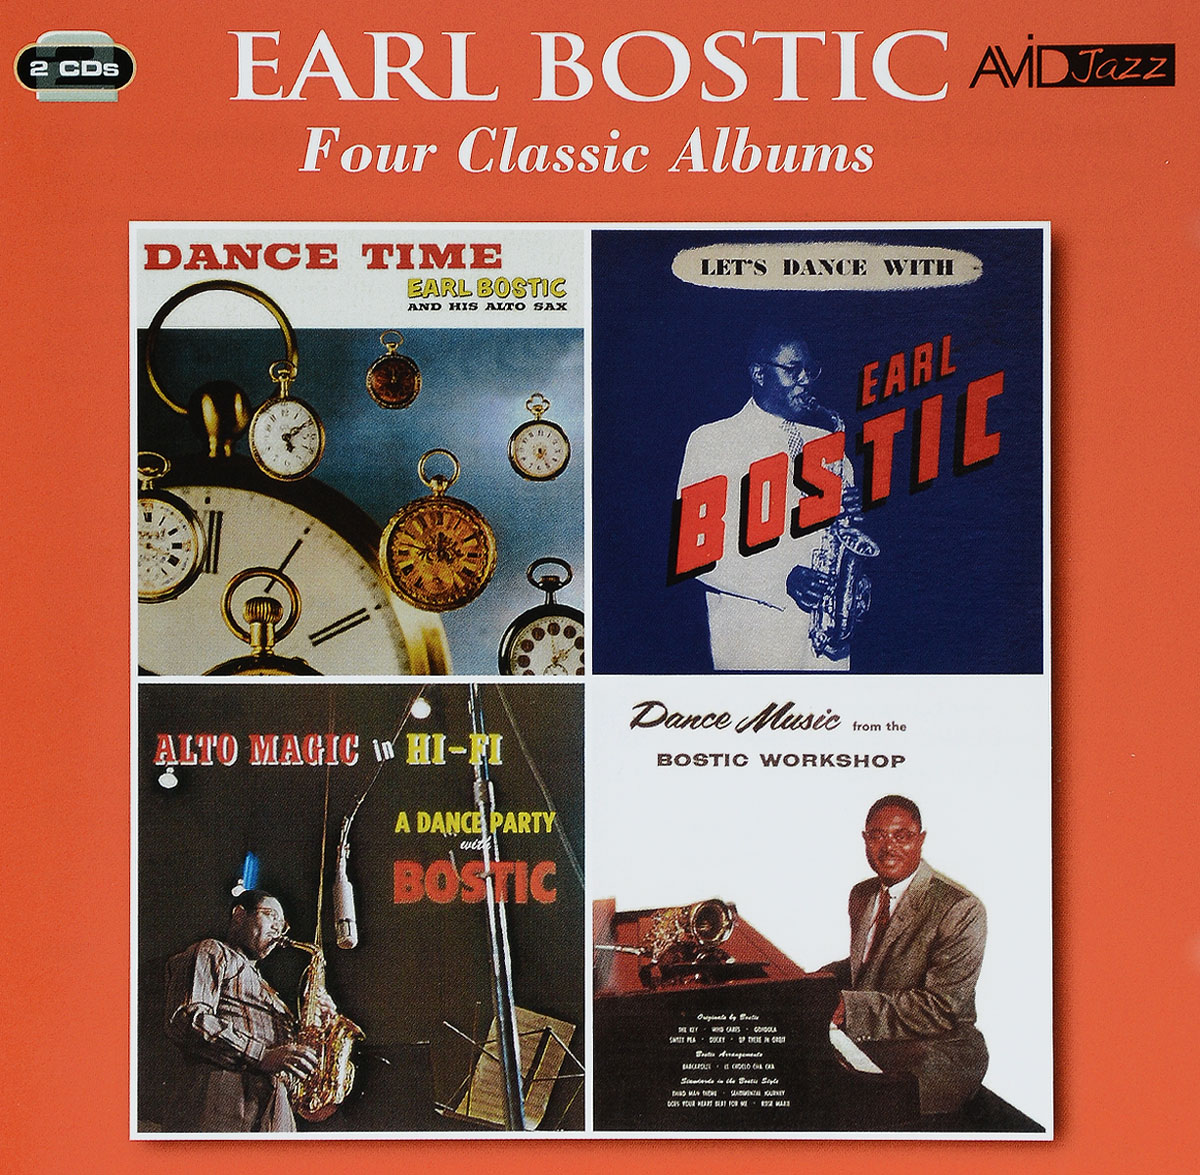 Эрл Бостик Avid Jazz. Earl Bostic. Four Classic Albums (2 CD) велосипедные тормоза sram avid sram 1 e1 db1 sram avid elixir 1 e1